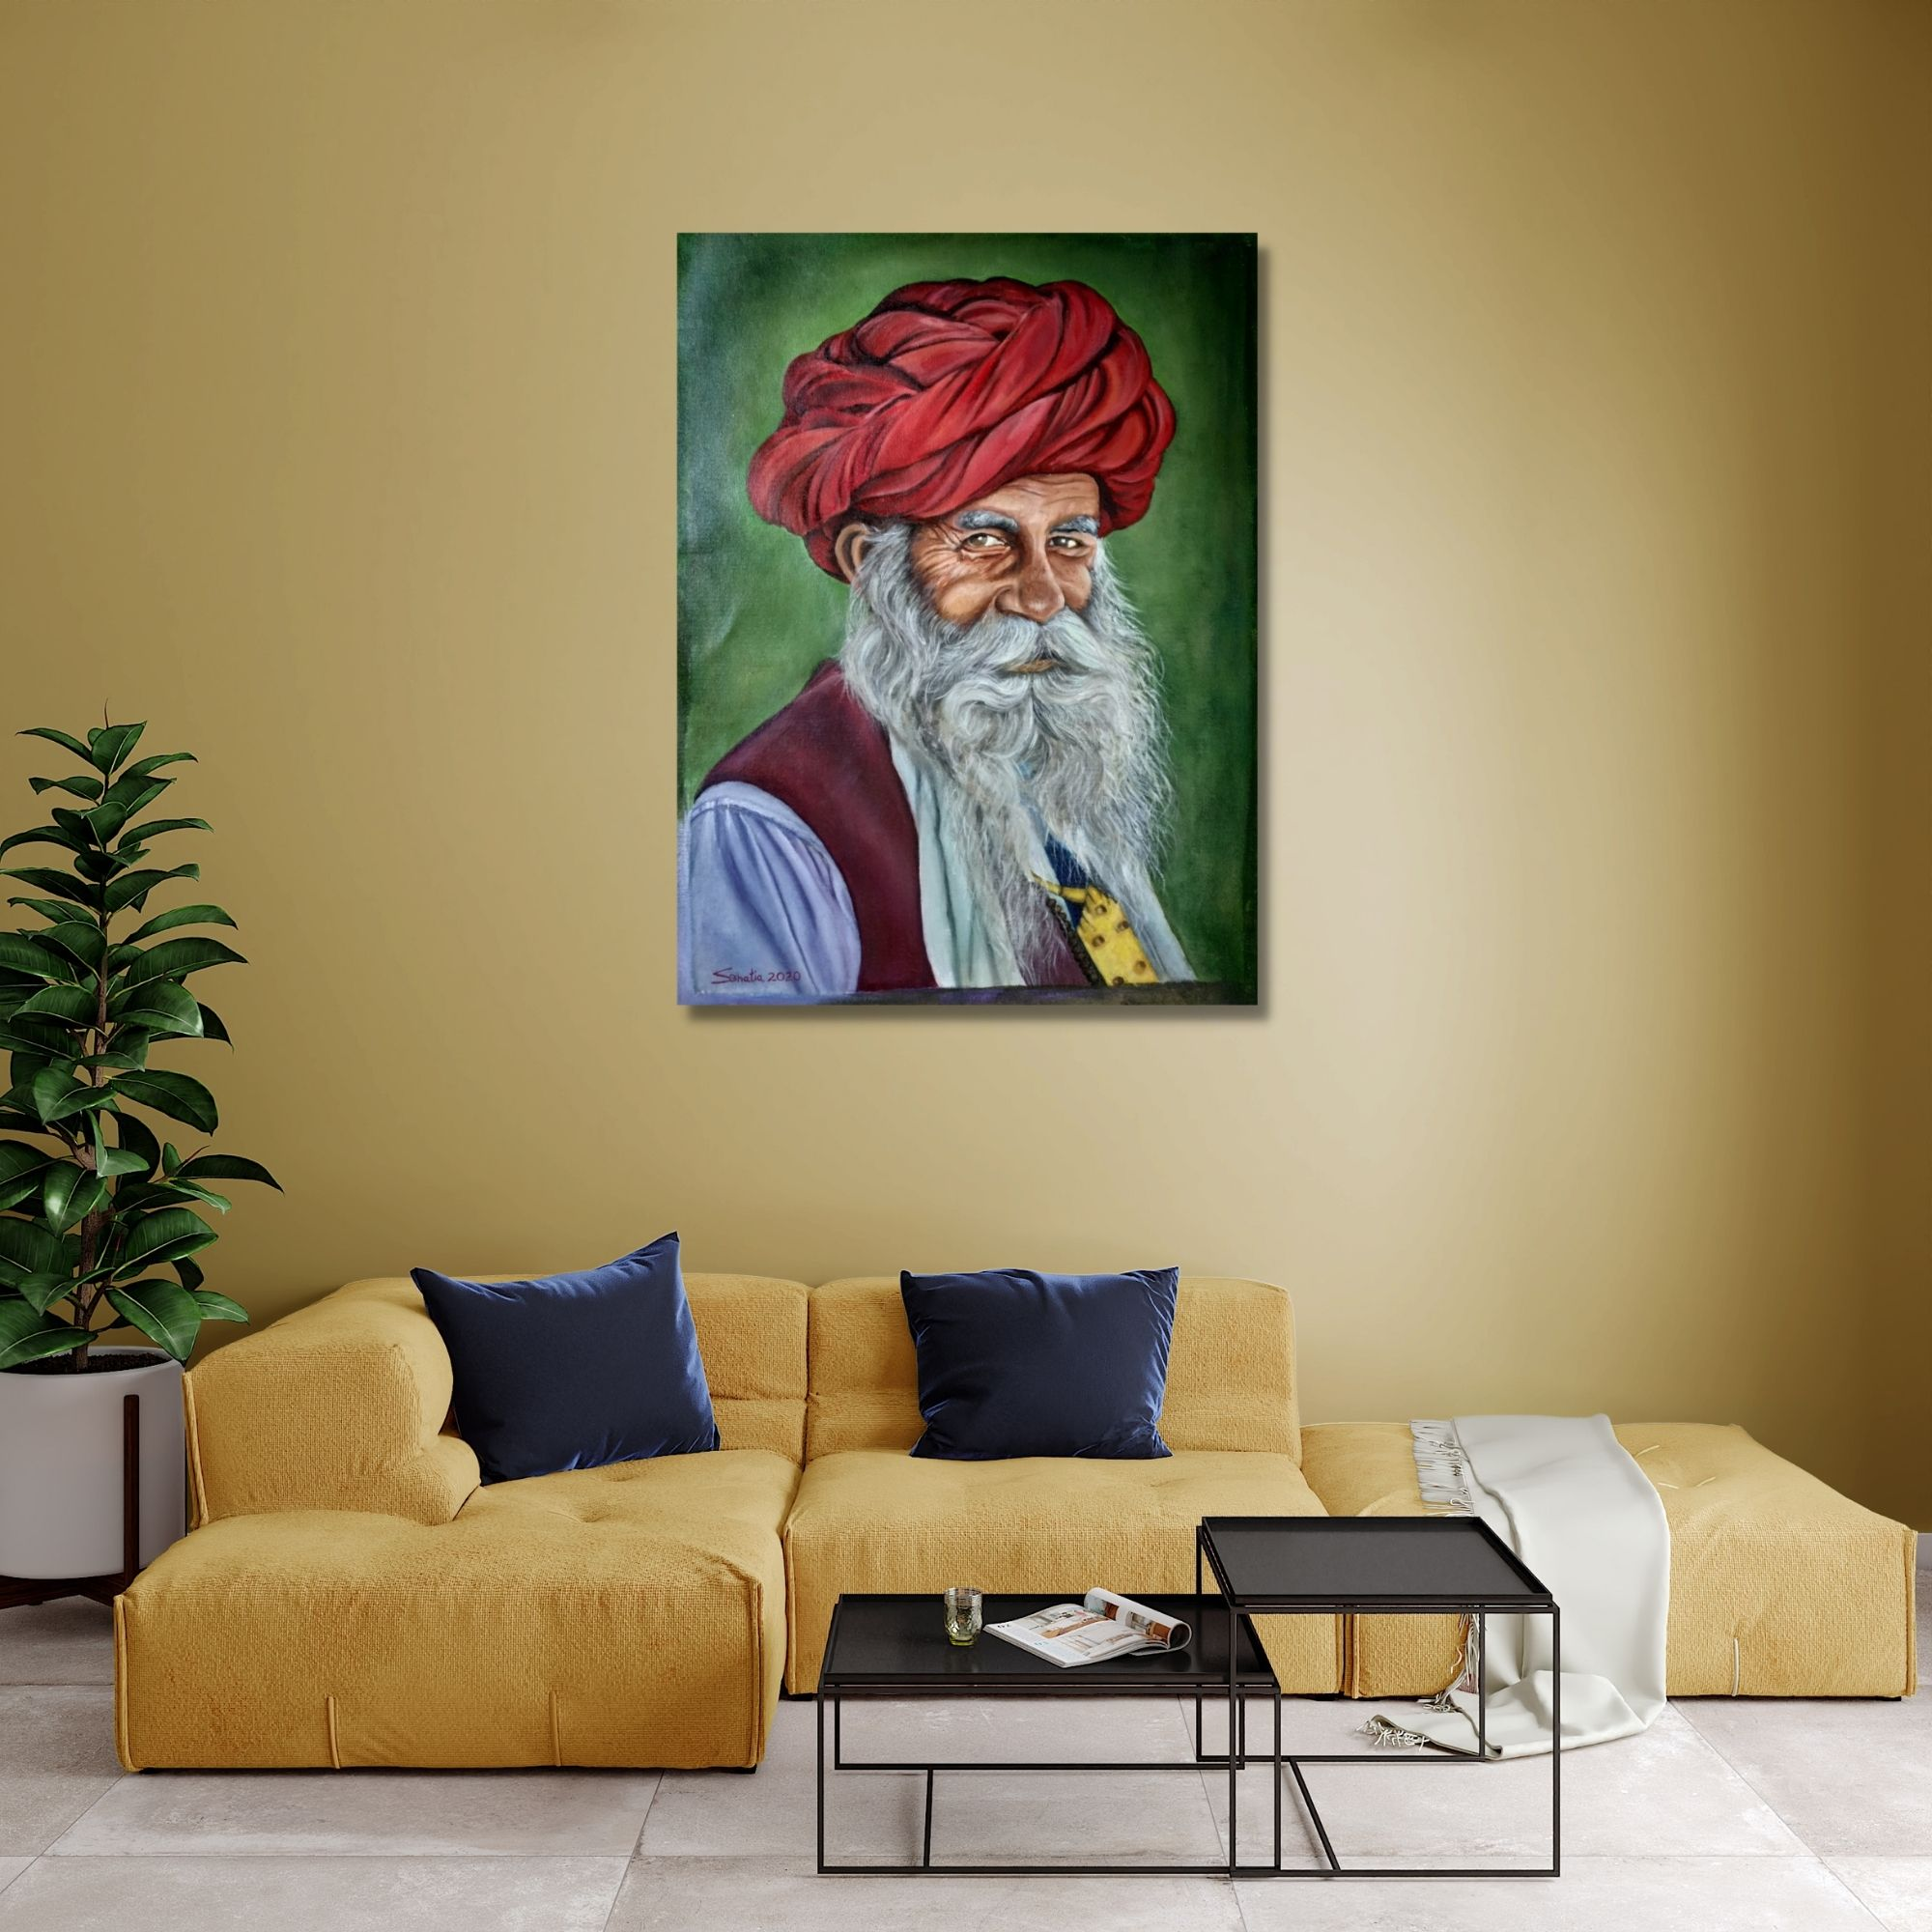 Old Man Portrait - Oil On Canvas Painting - 24x18